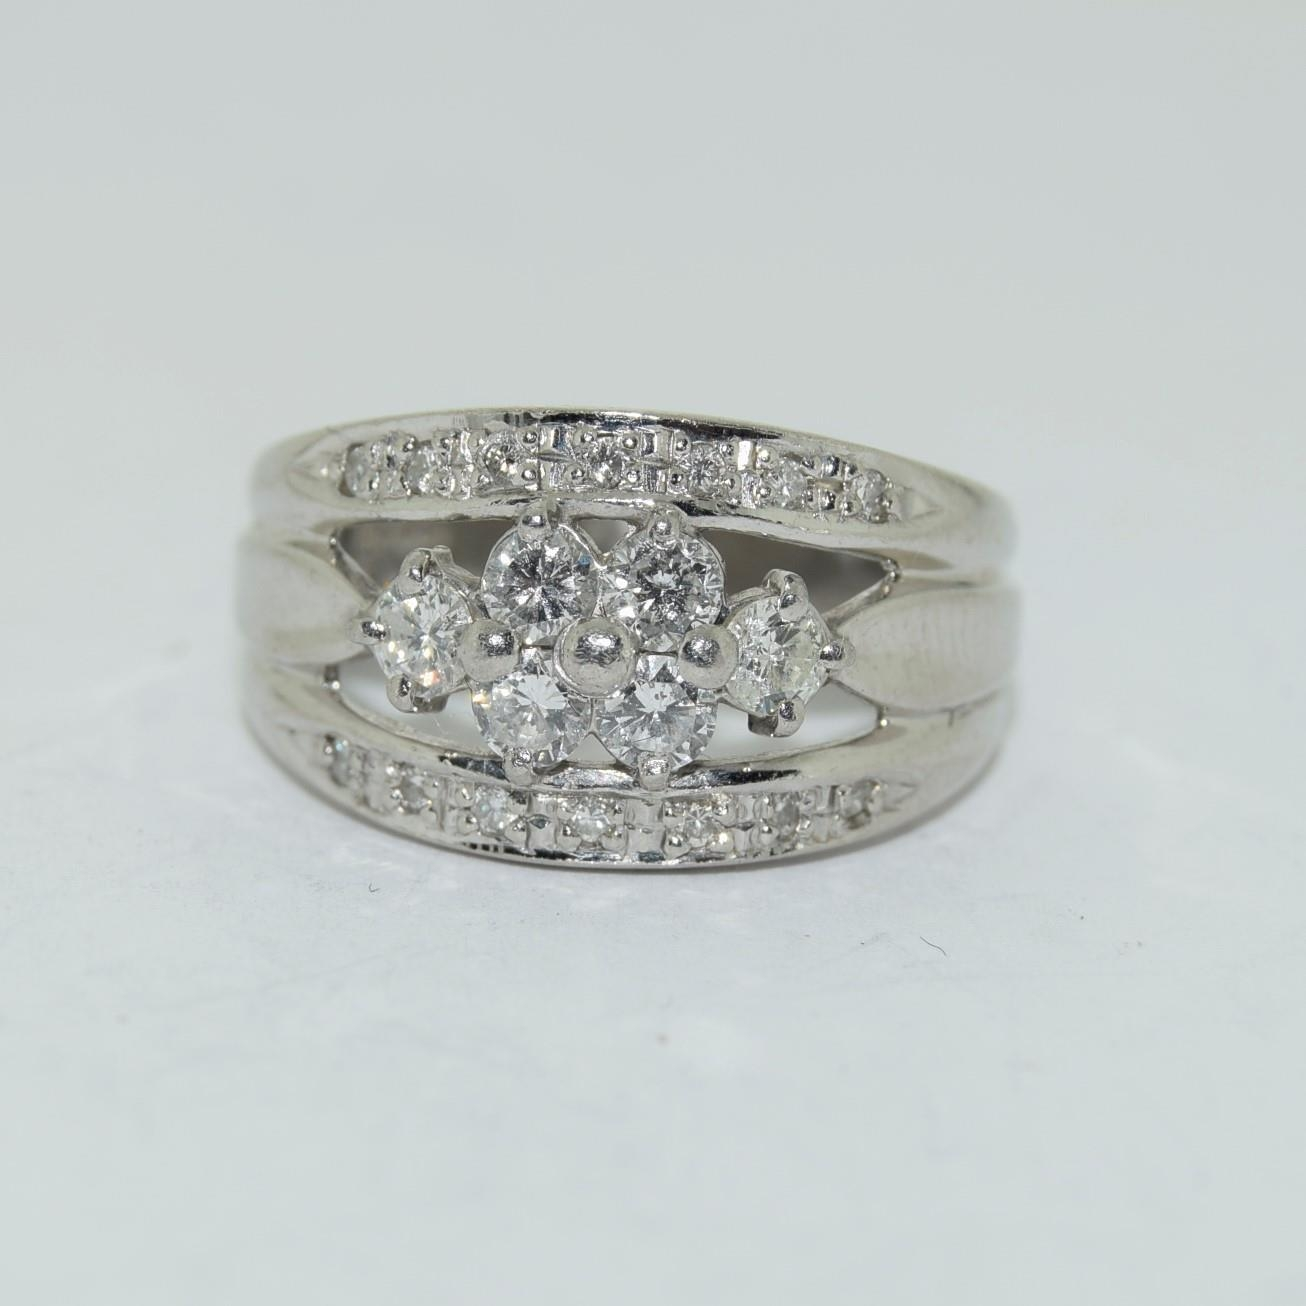 Platinum set ring with central cluster of diamonds approx 70 points size K